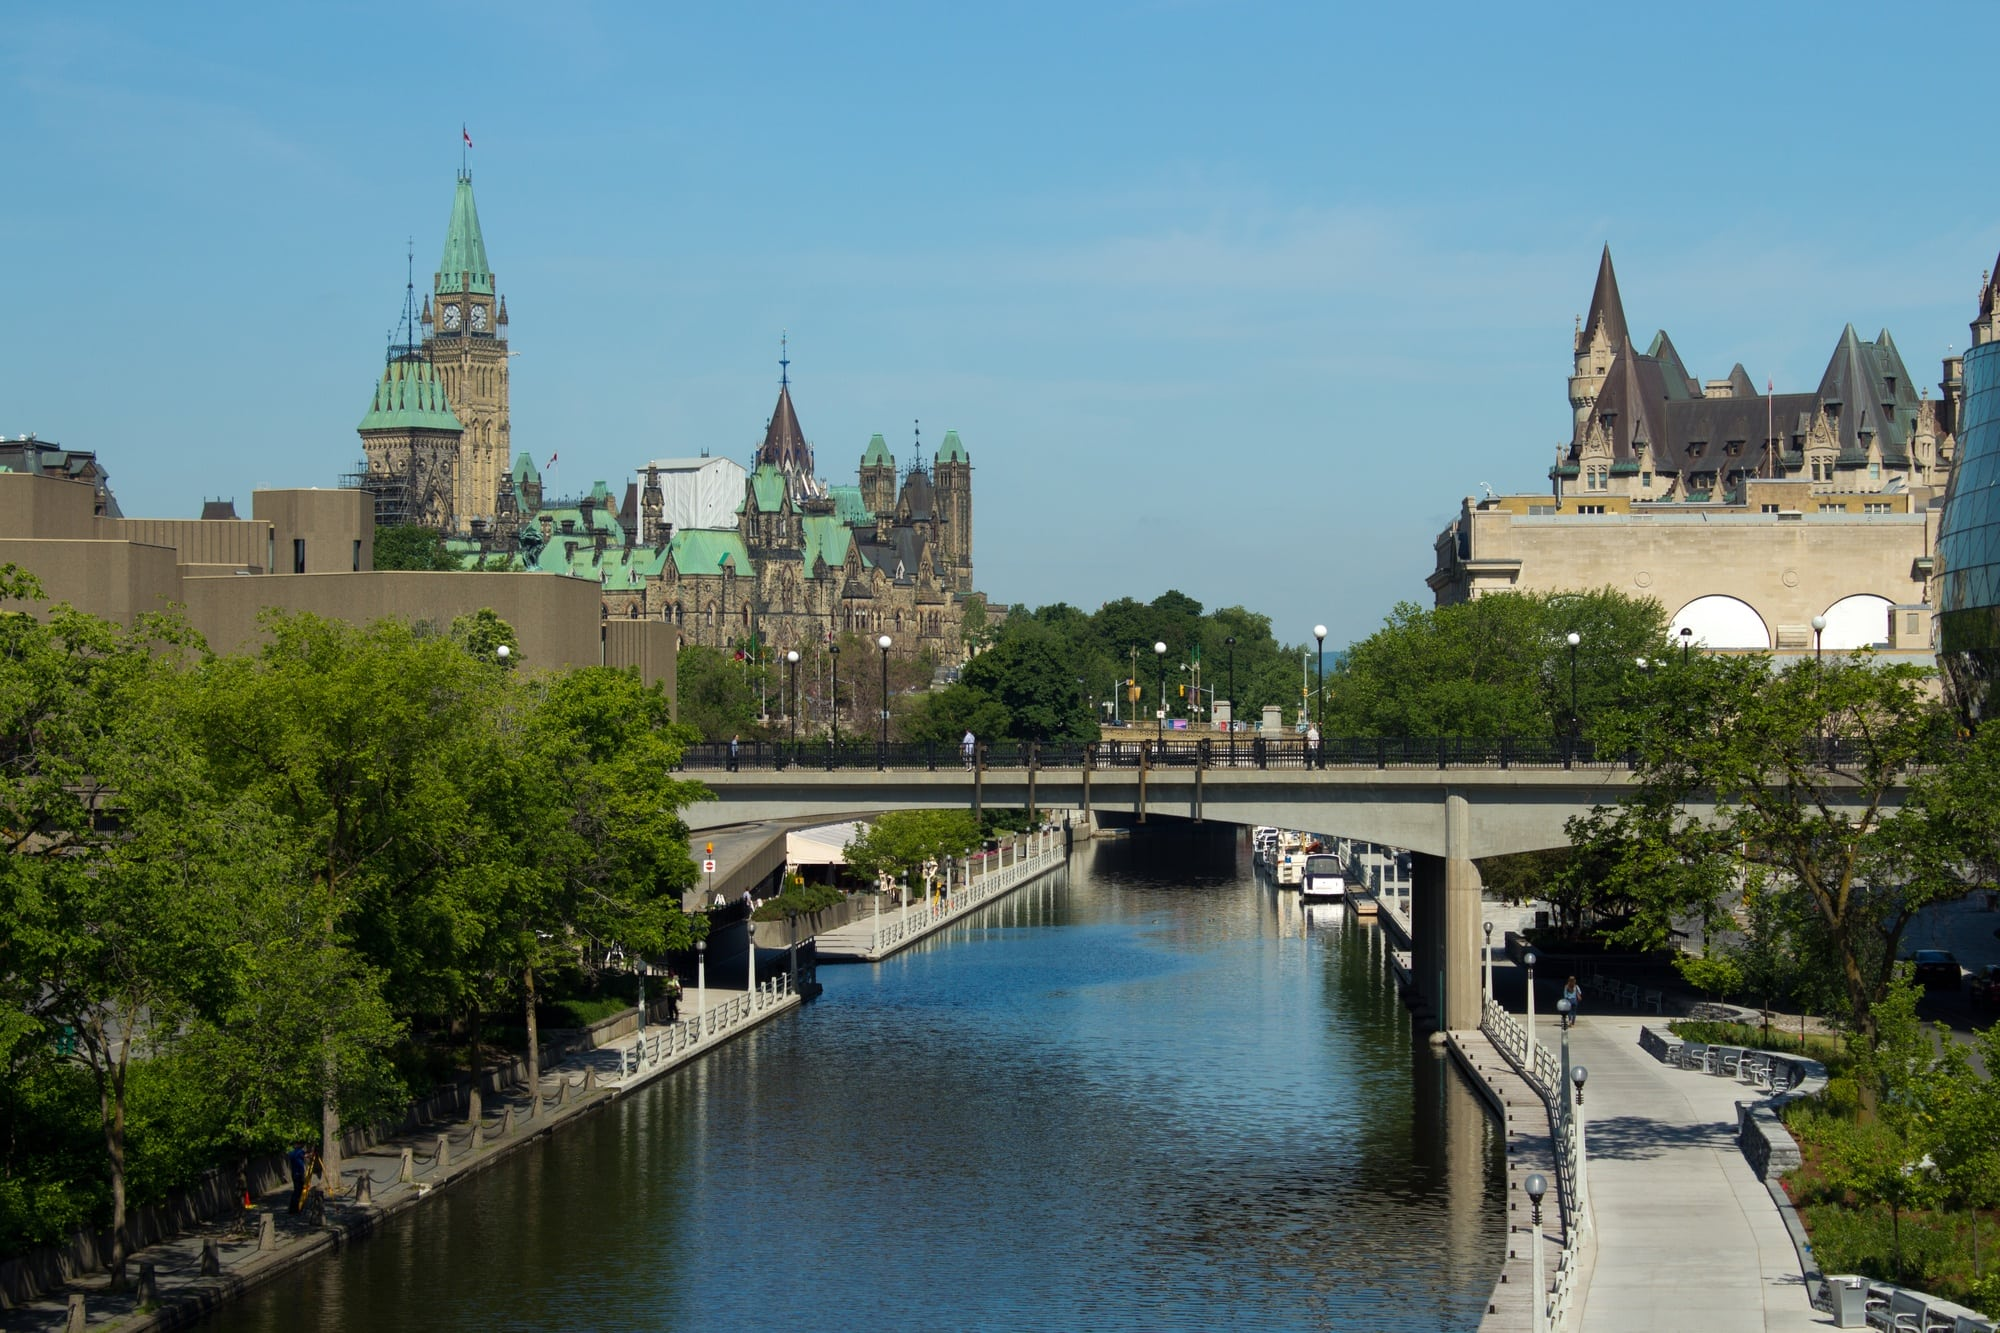 The Rideau Canal is a National Historic Site of Canada and a UNESCO World Heritage Site